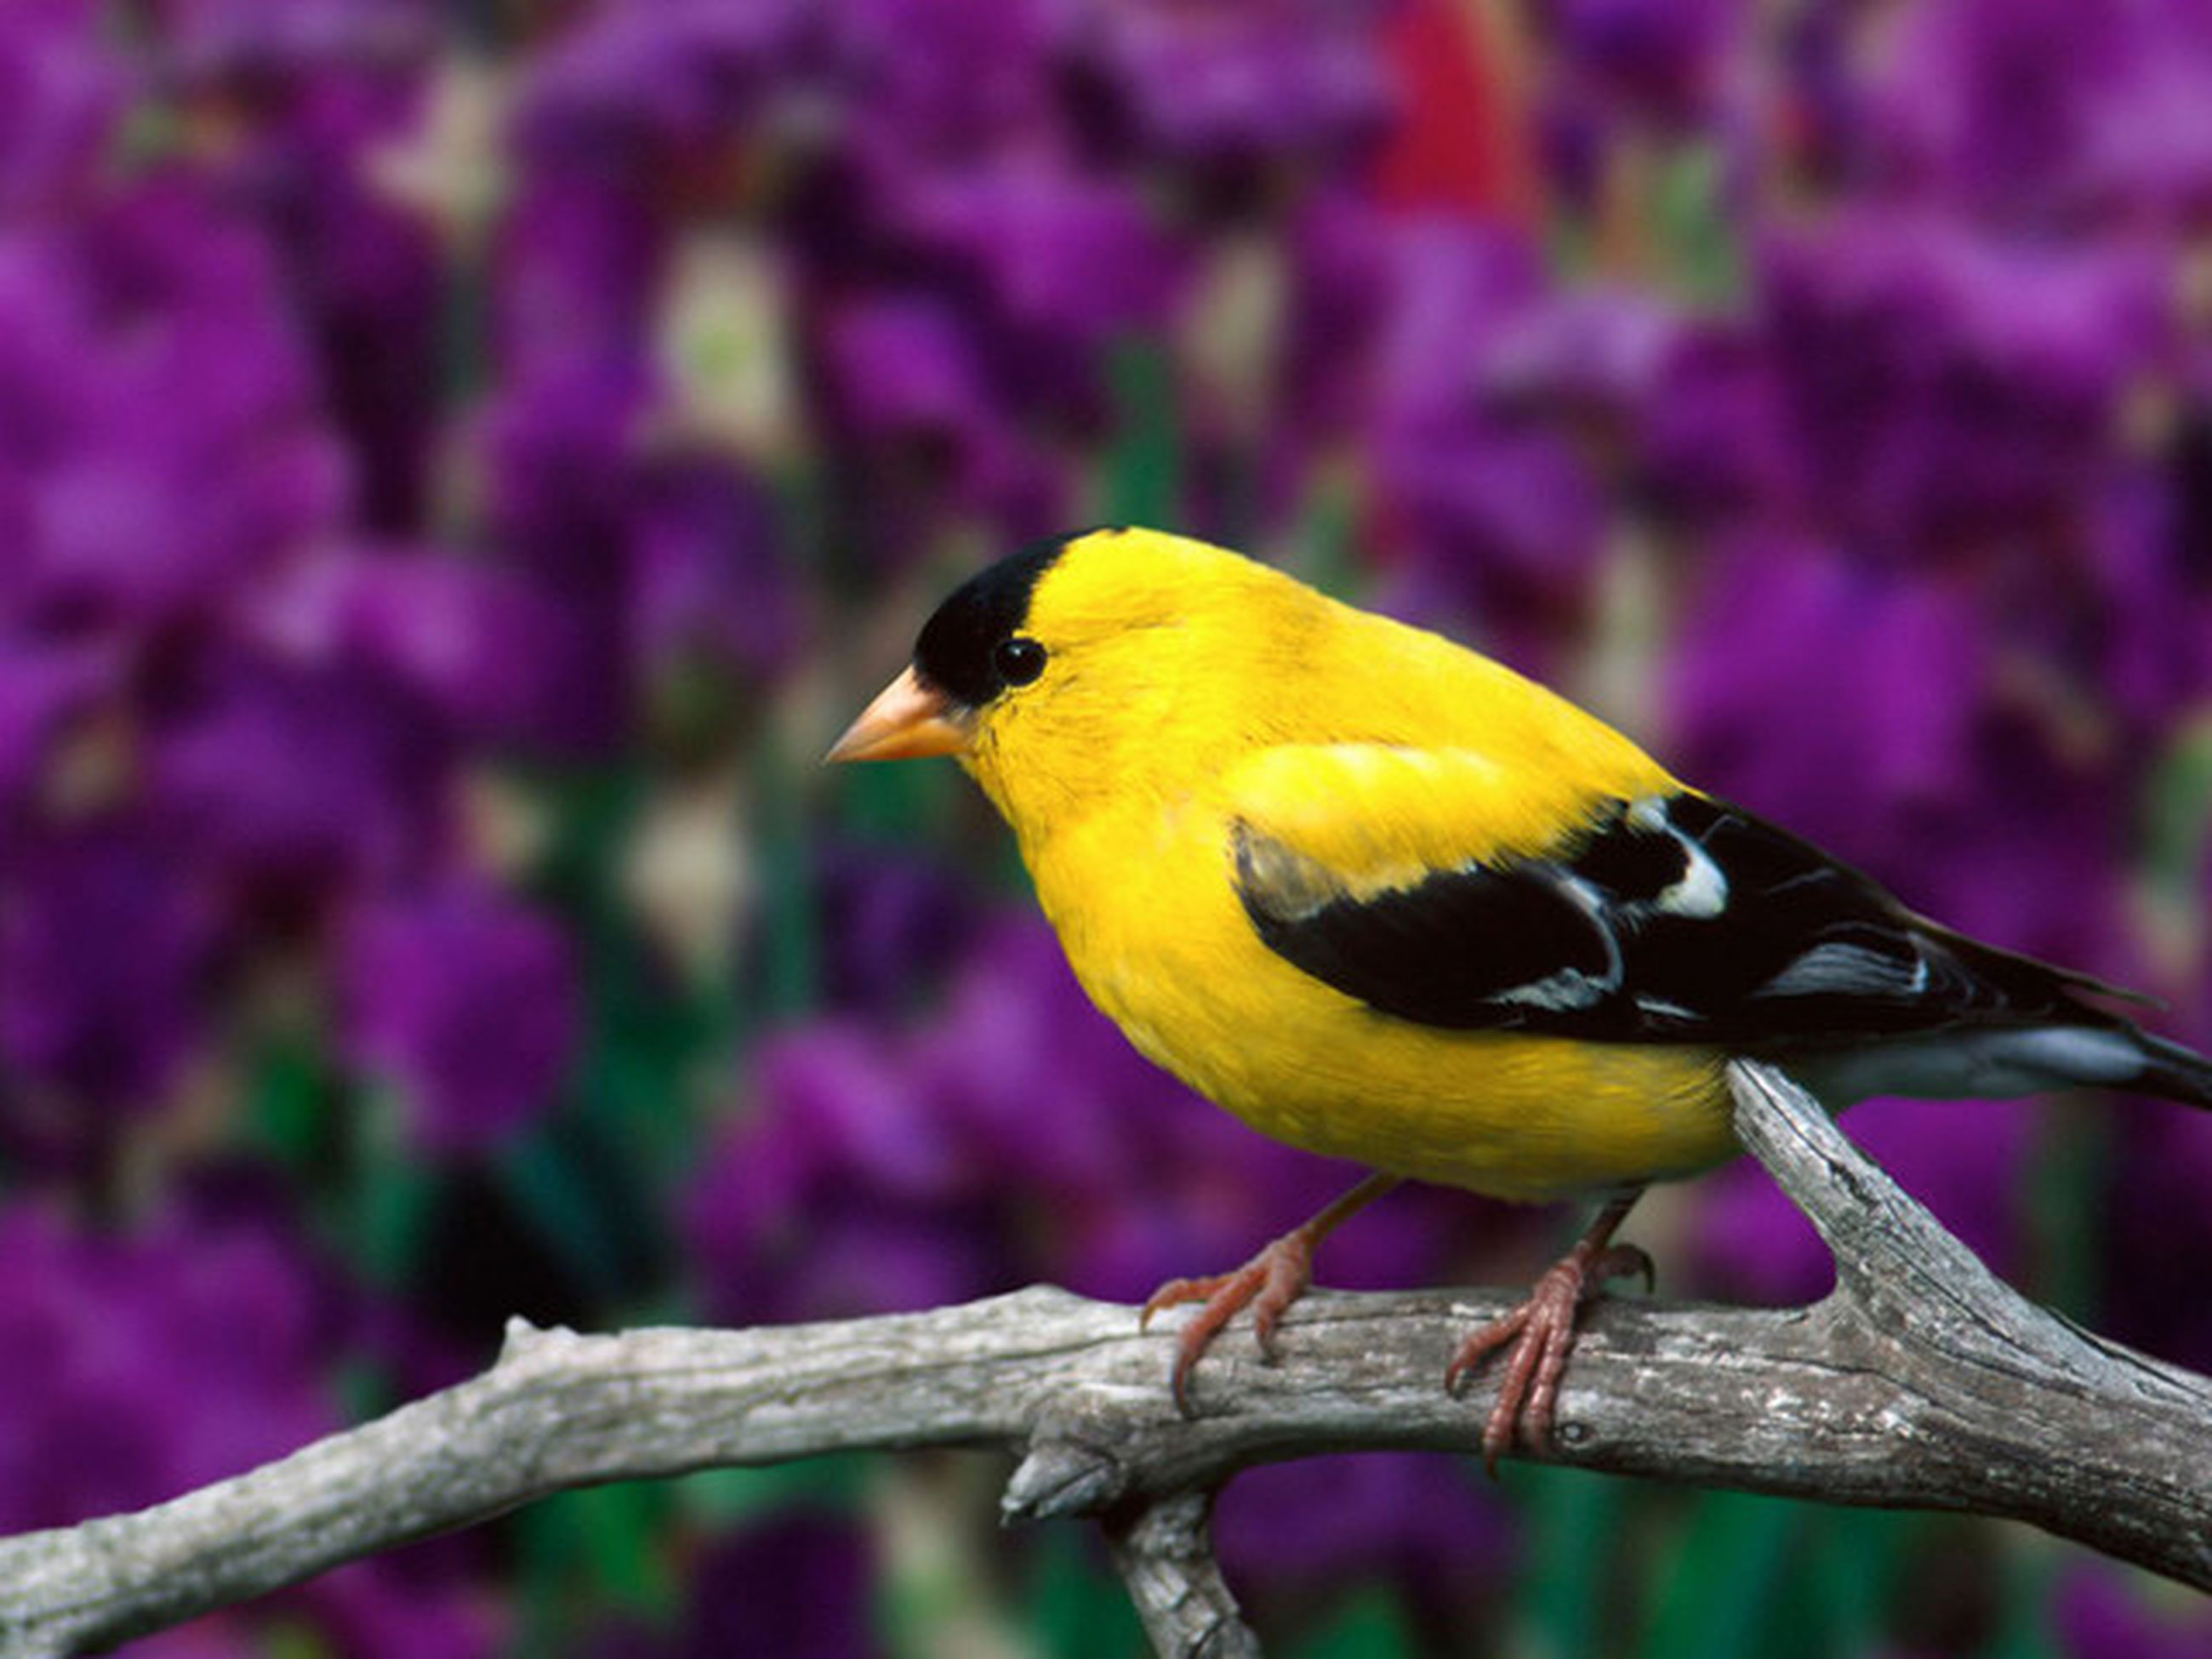 animal themes, animals in the wild, bird, one animal, wildlife, focus on foreground, perching, branch, close-up, nature, yellow, full length, beauty in nature, beak, outdoors, day, no people, tree, selective focus, side view